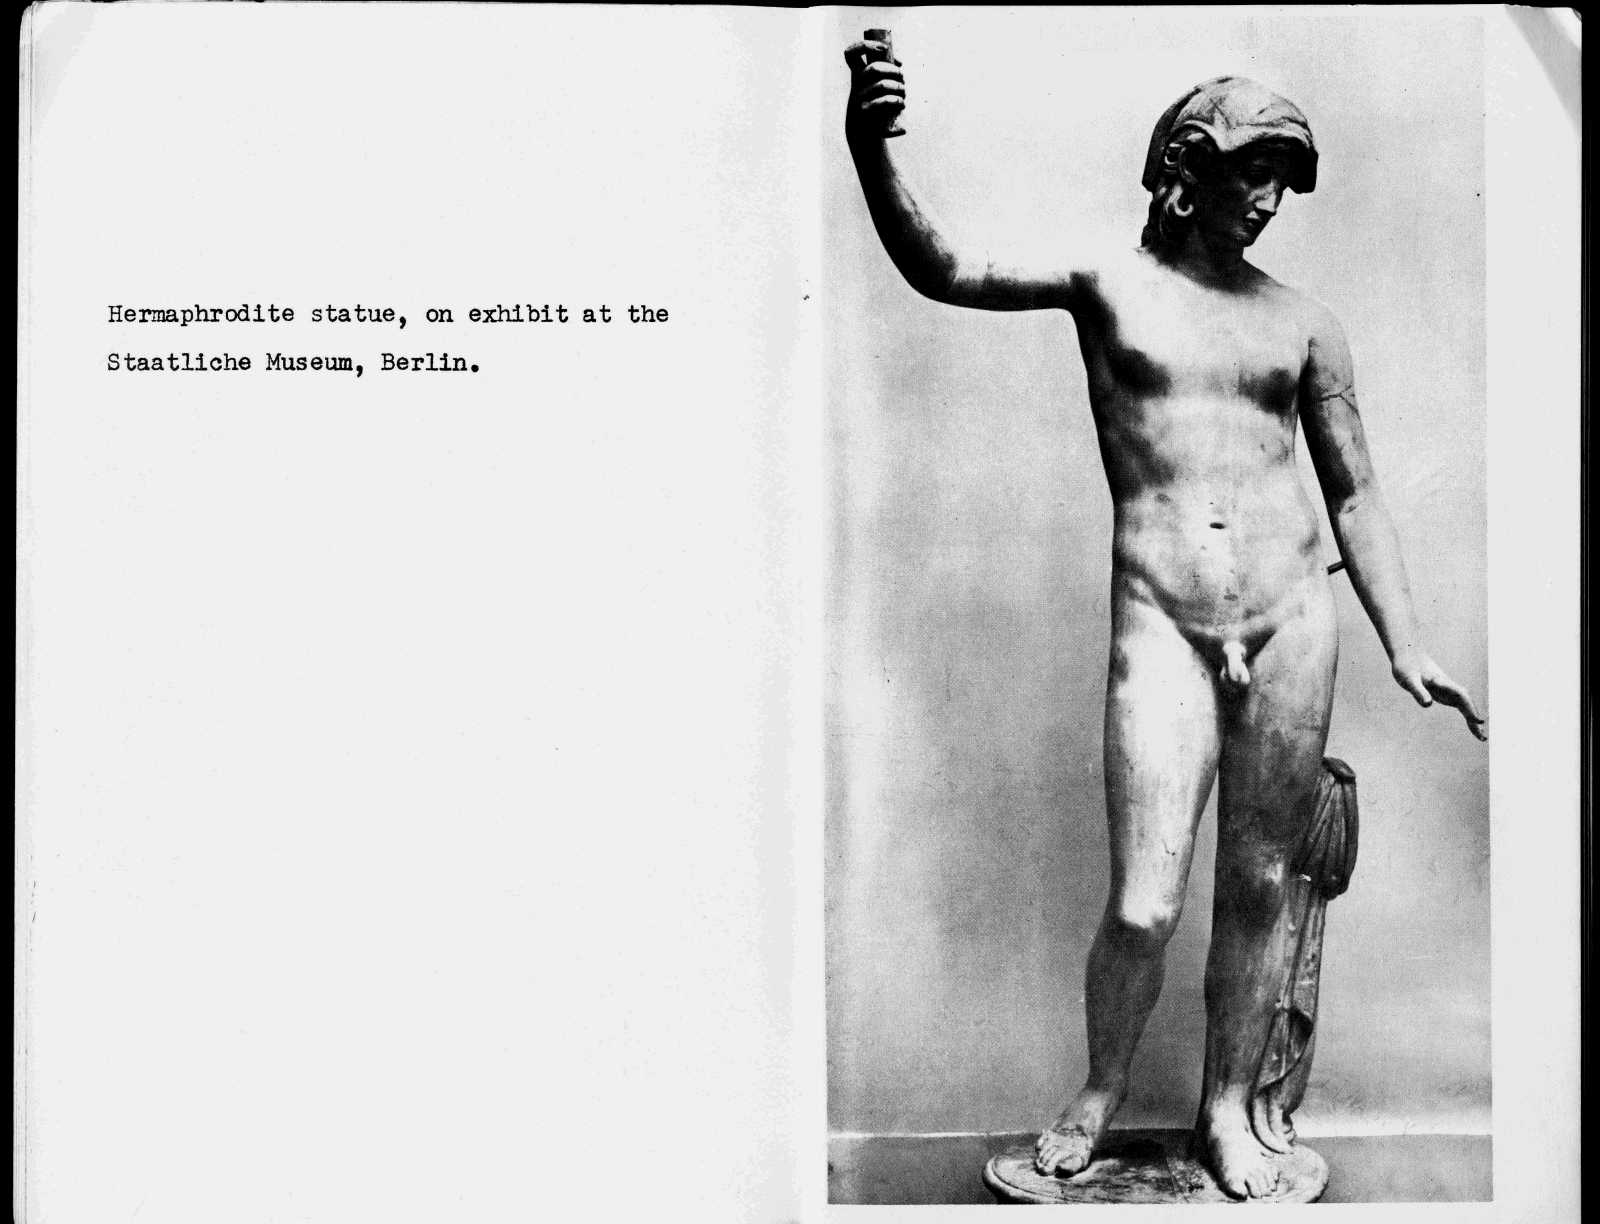 Hermaphrodite Below are the images from A Private Anthropological Cabinet of the  Hermaphrodite: The Bisexual Figure in Photographs and Illustrations.